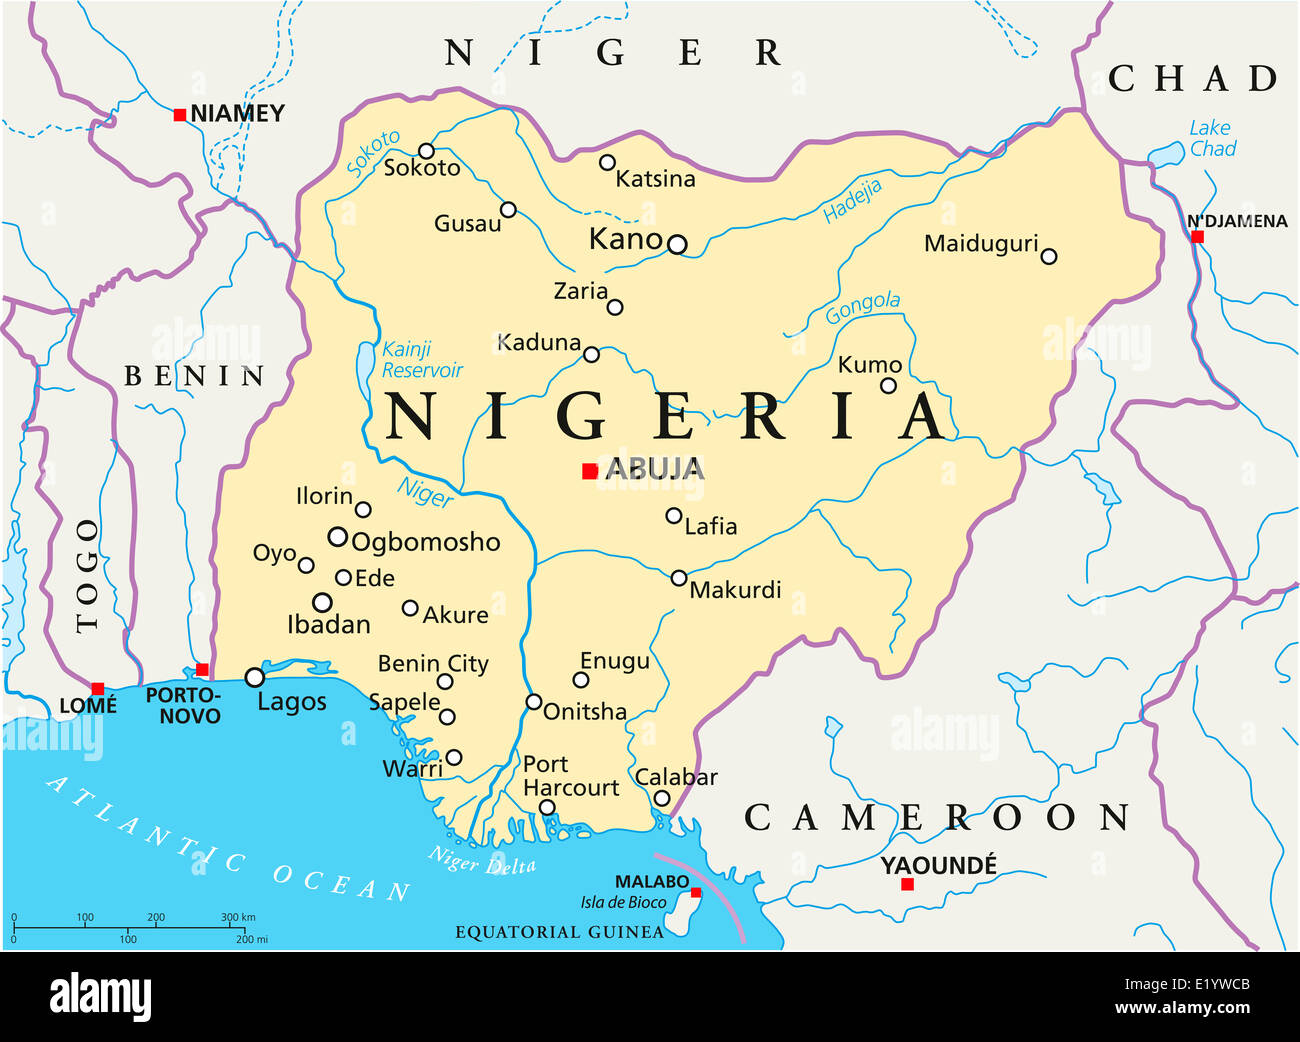 Nigeria Political Map With Capital Abuja National Borders Most Stock Photo Royalty Free Image